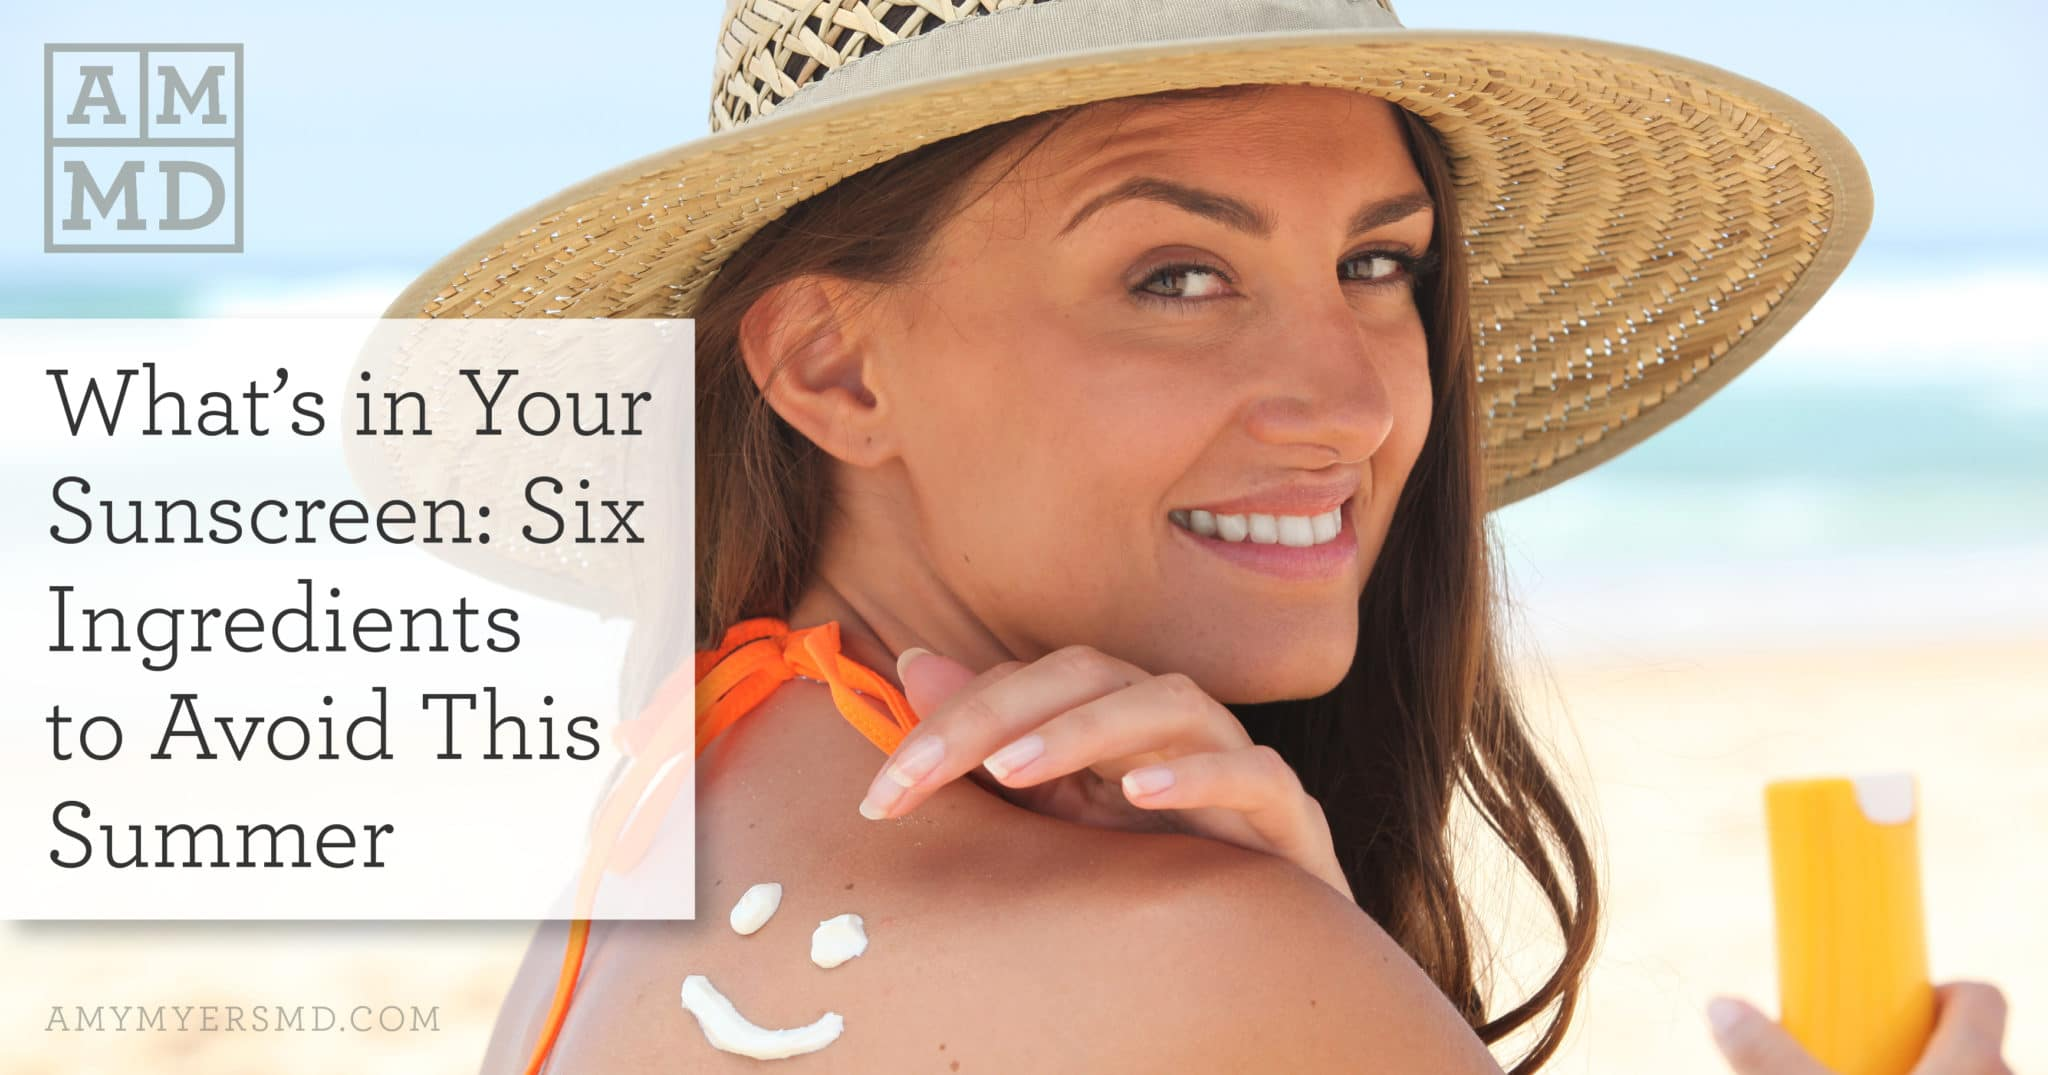 What's in Your Sunscreen: Six Ingredients to Avoid This Summer - A Woman Applying Sunscreeen - Featured Image - Amy Myers MD